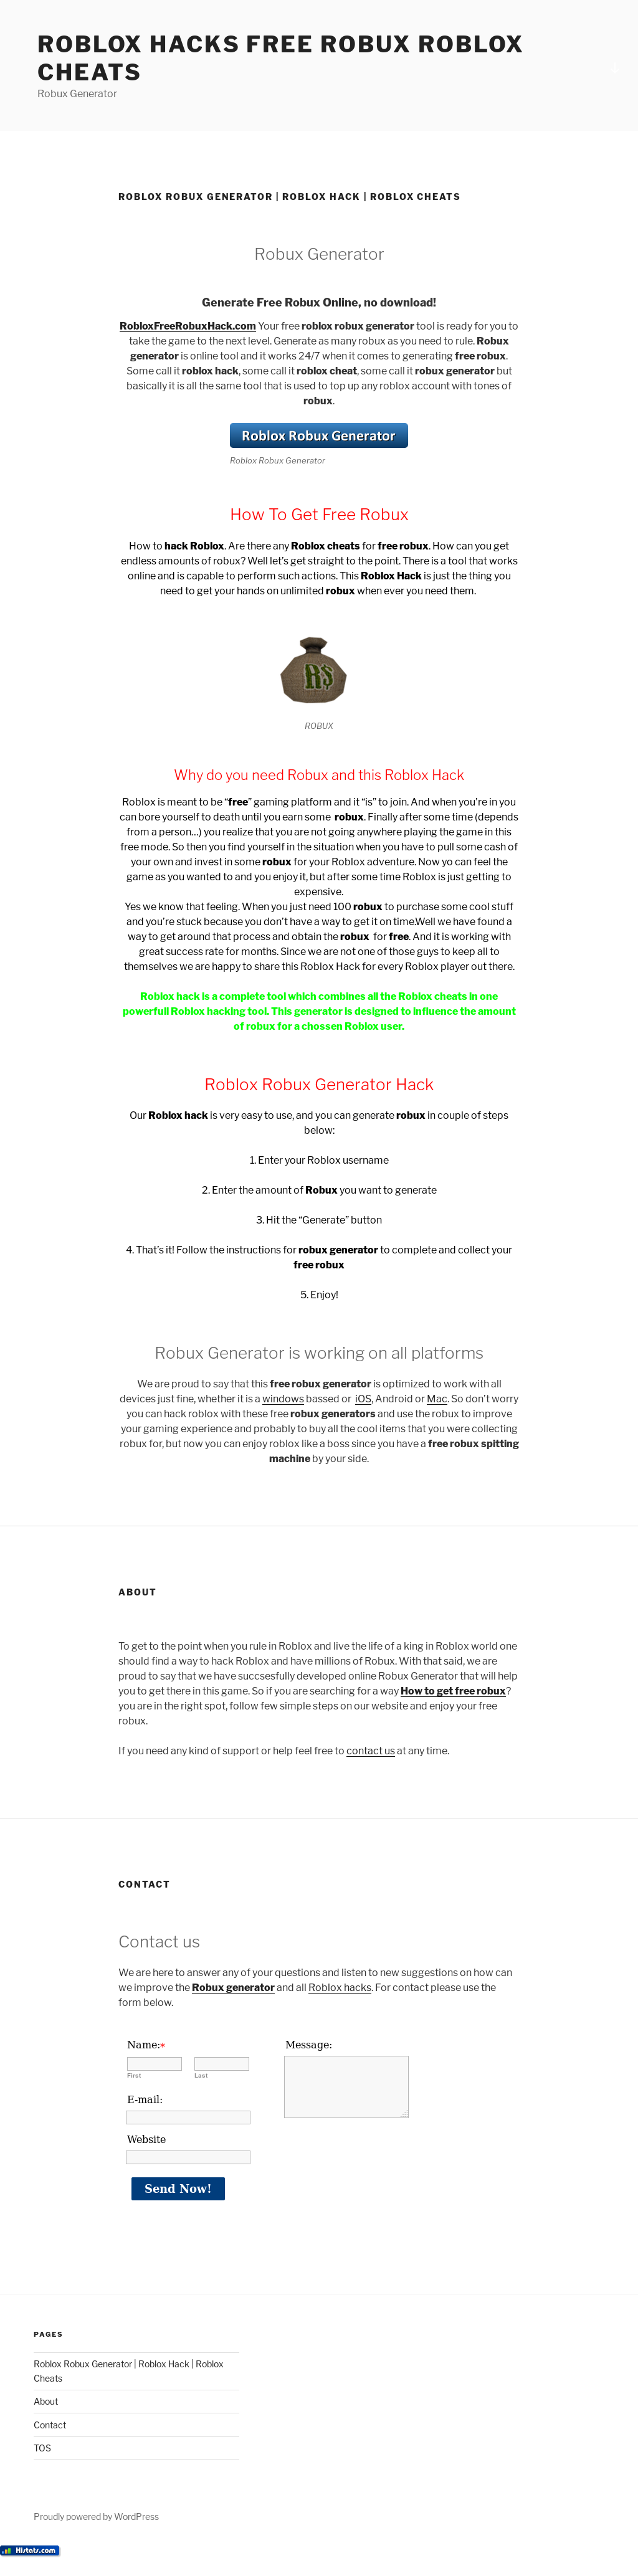 Roblox Hack Competitors, Revenue and Employees - Owler